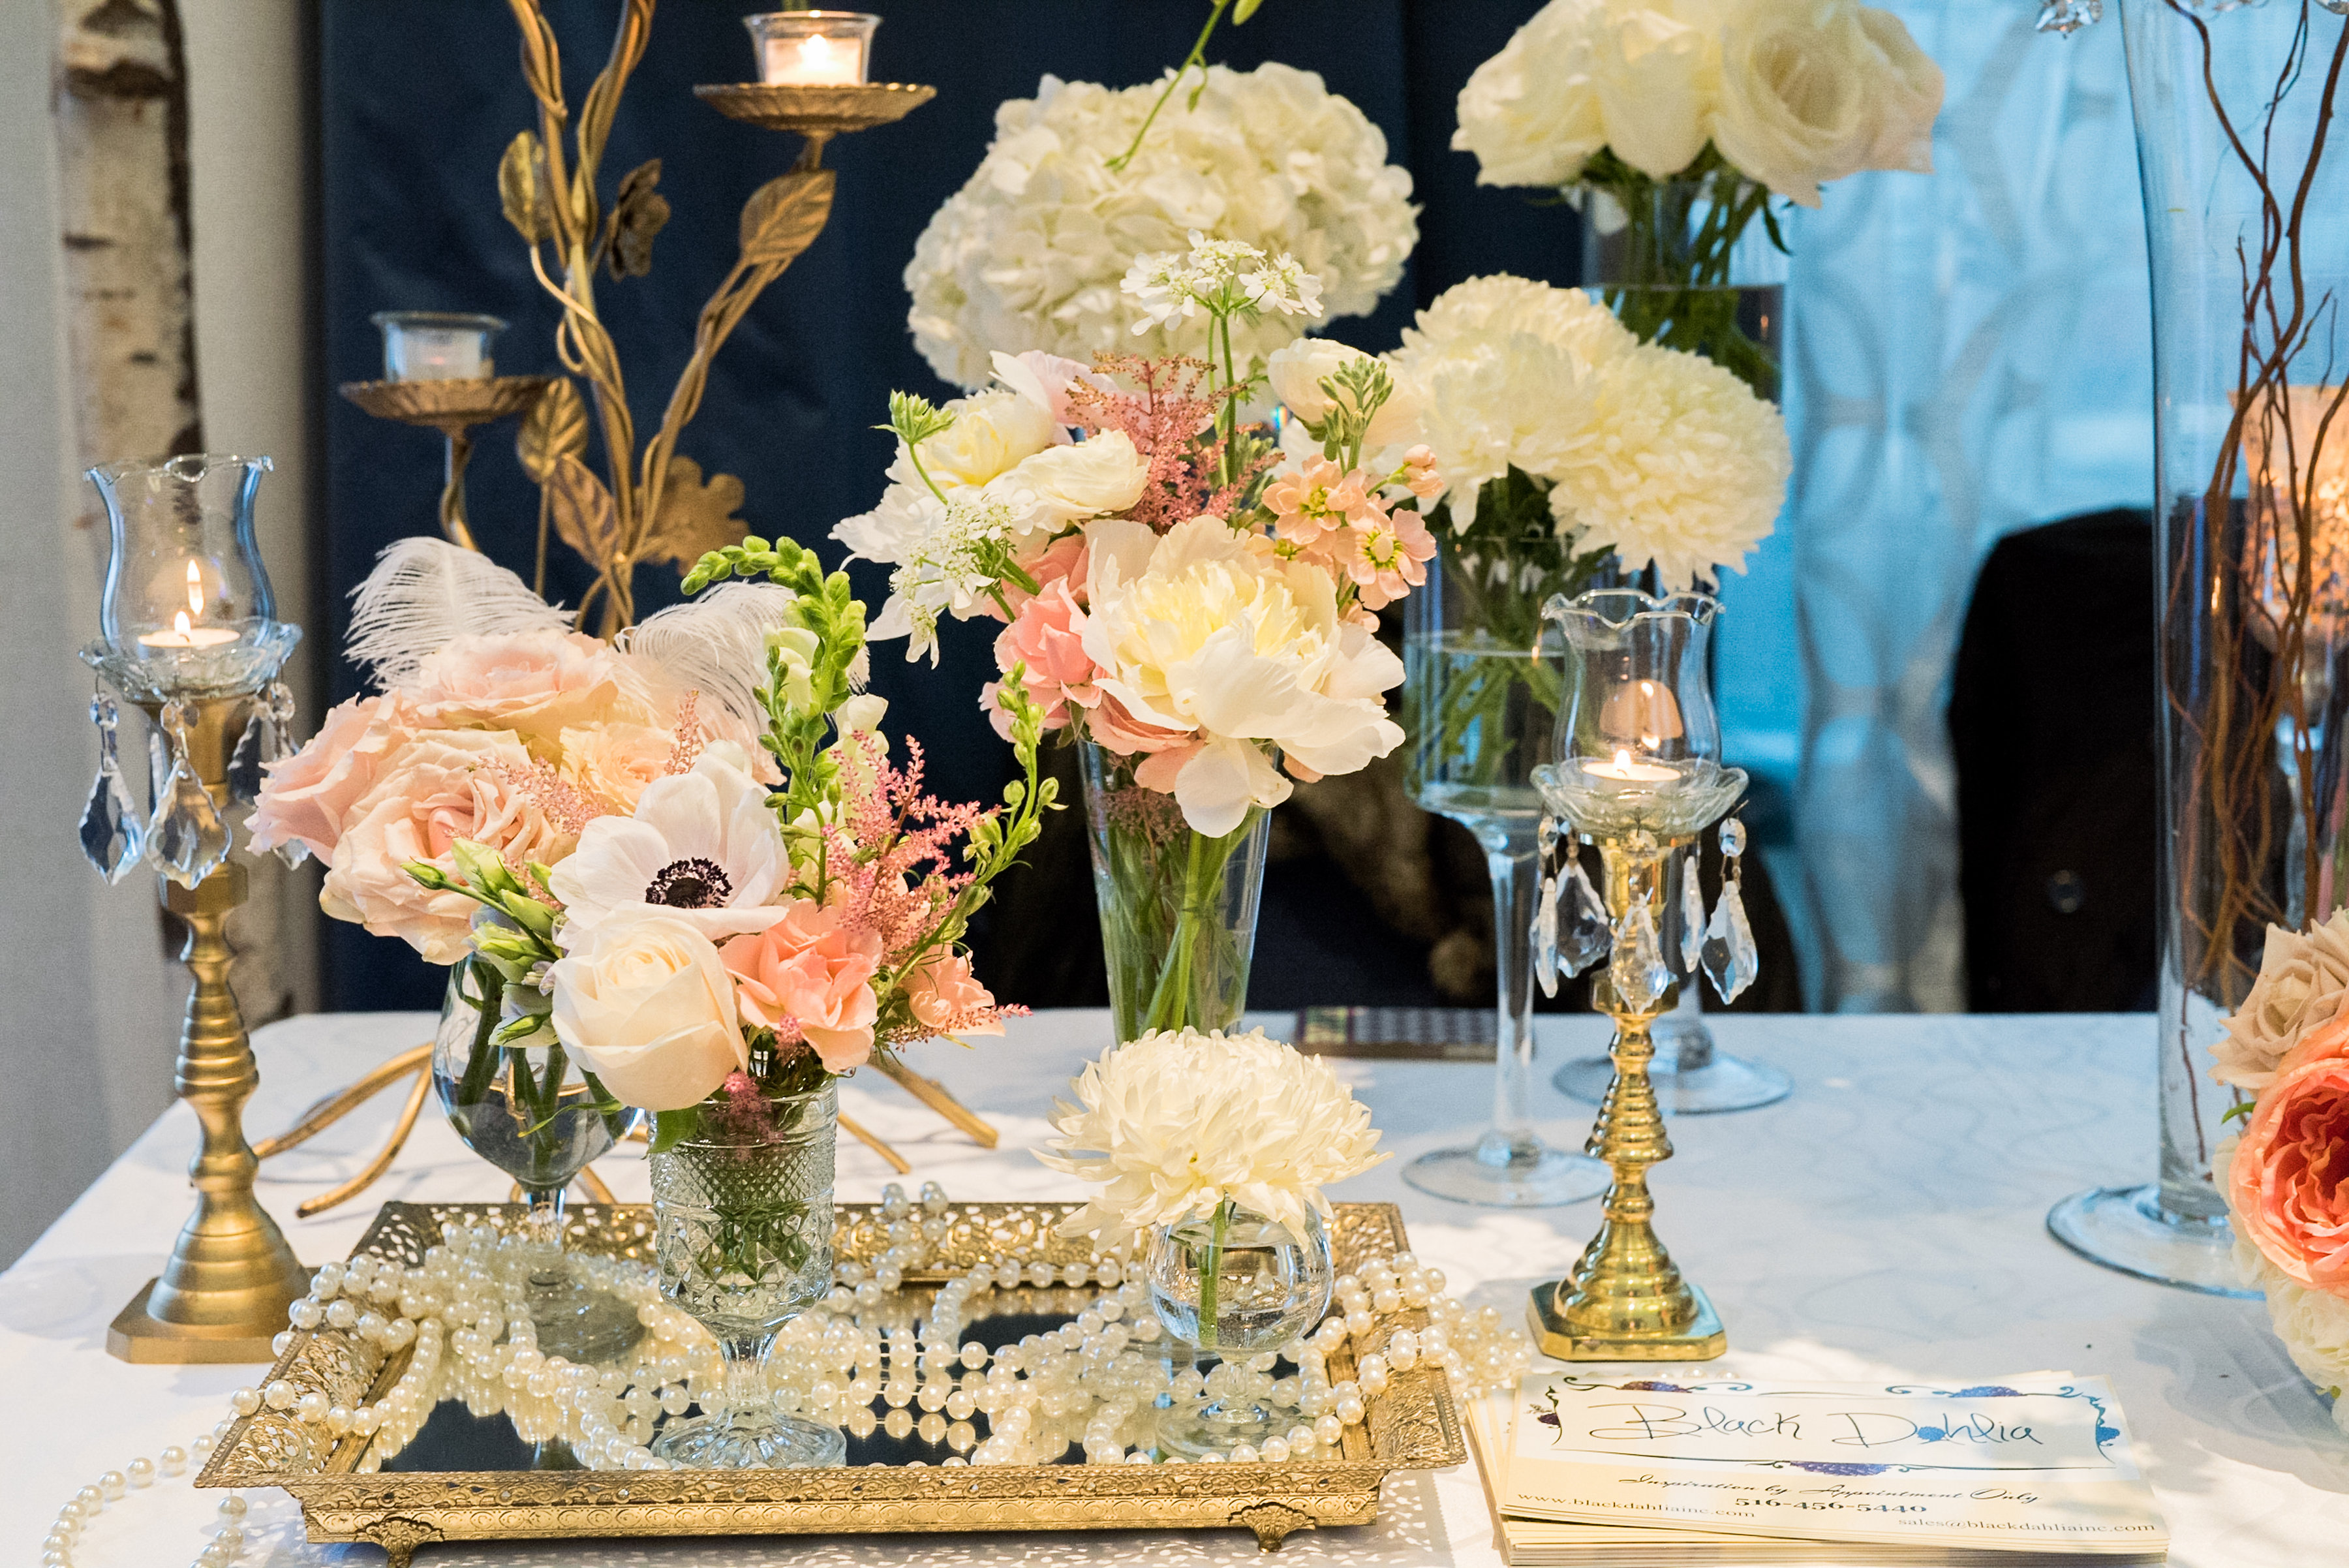 Long Island Bridal Extravaganza is Wednesday, April 5th!